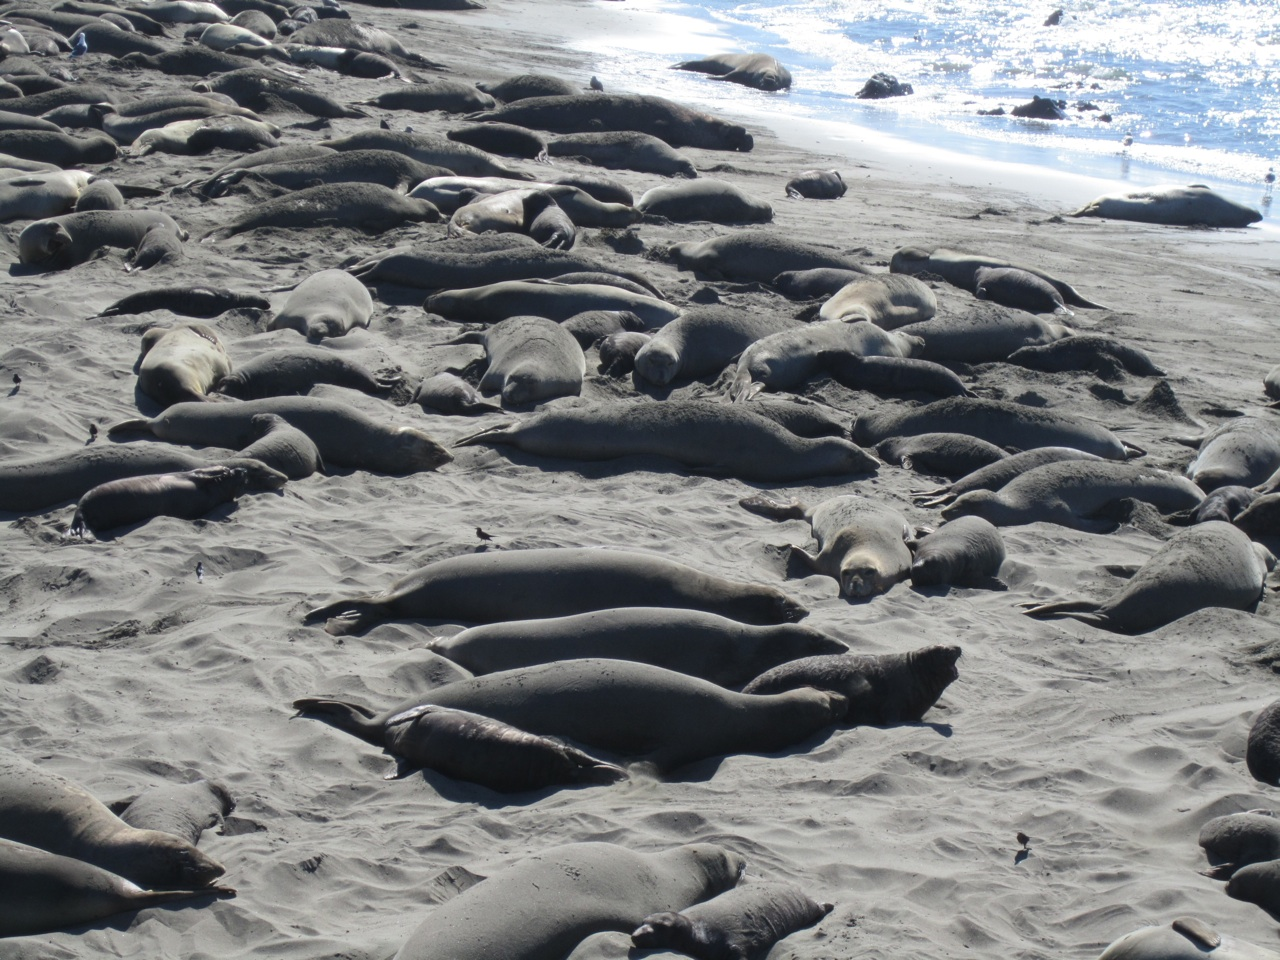 Elephant Seals On The Beach